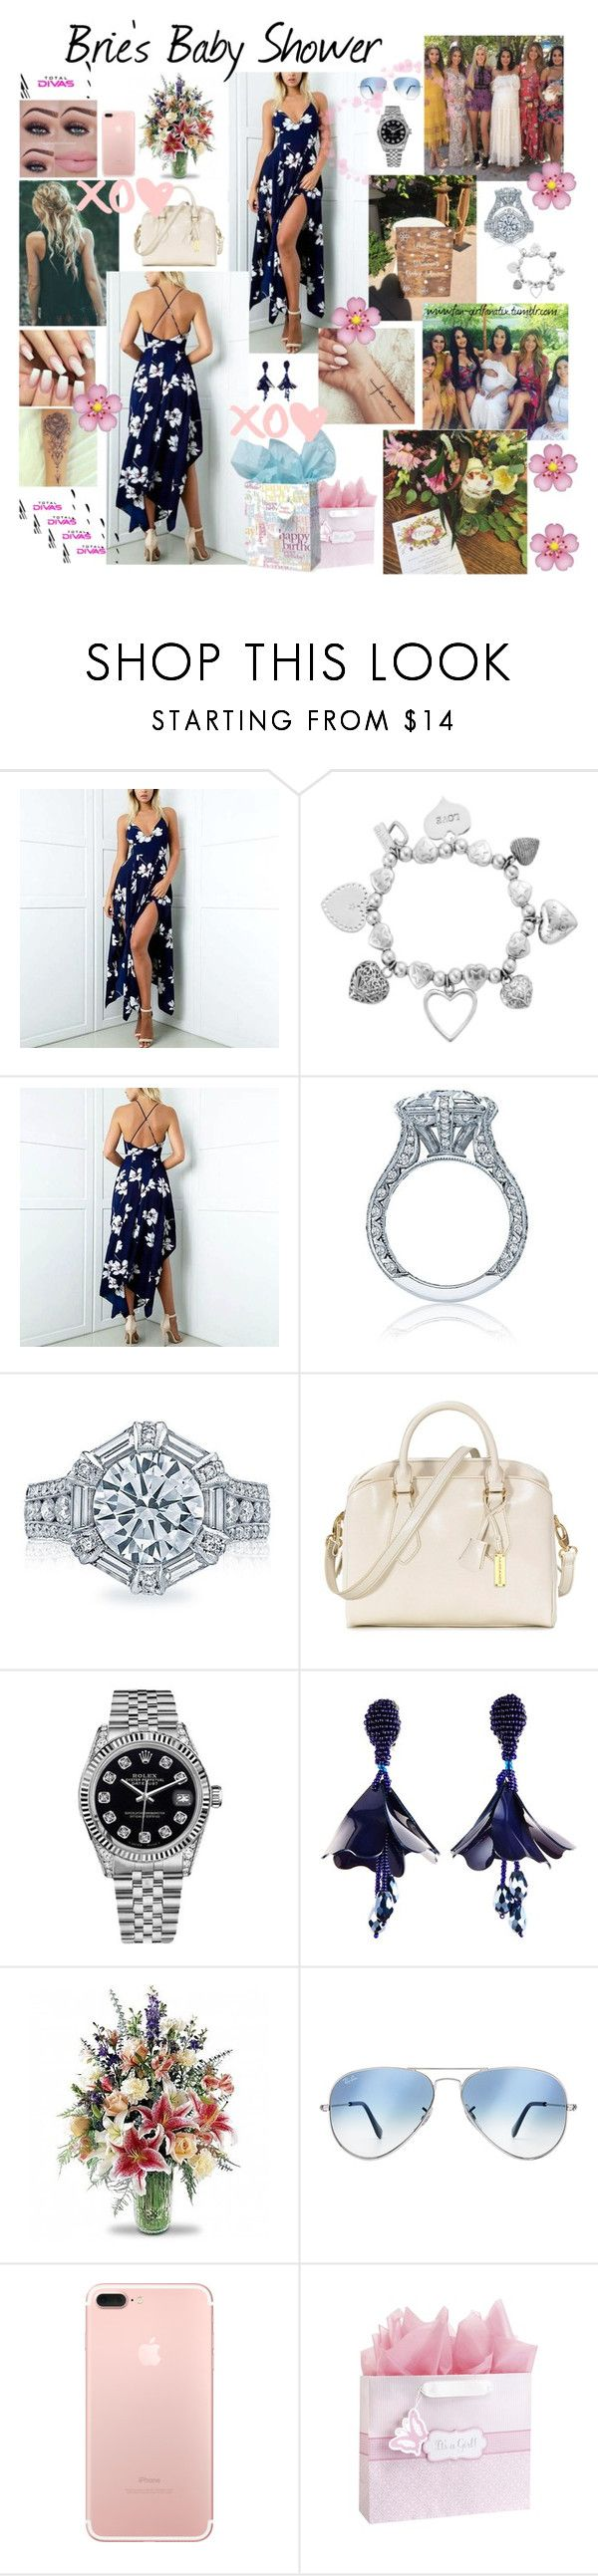 """OC AJ WWE Diva ~ Brie's baby shower"" by fan-girlfanatix ❤ liked on Polyvore featuring ChloBo, Tacori, RABEANCO, Rolex, Oscar de la Renta, Ray-Ban, Fleur of England and C.R. Gibson"